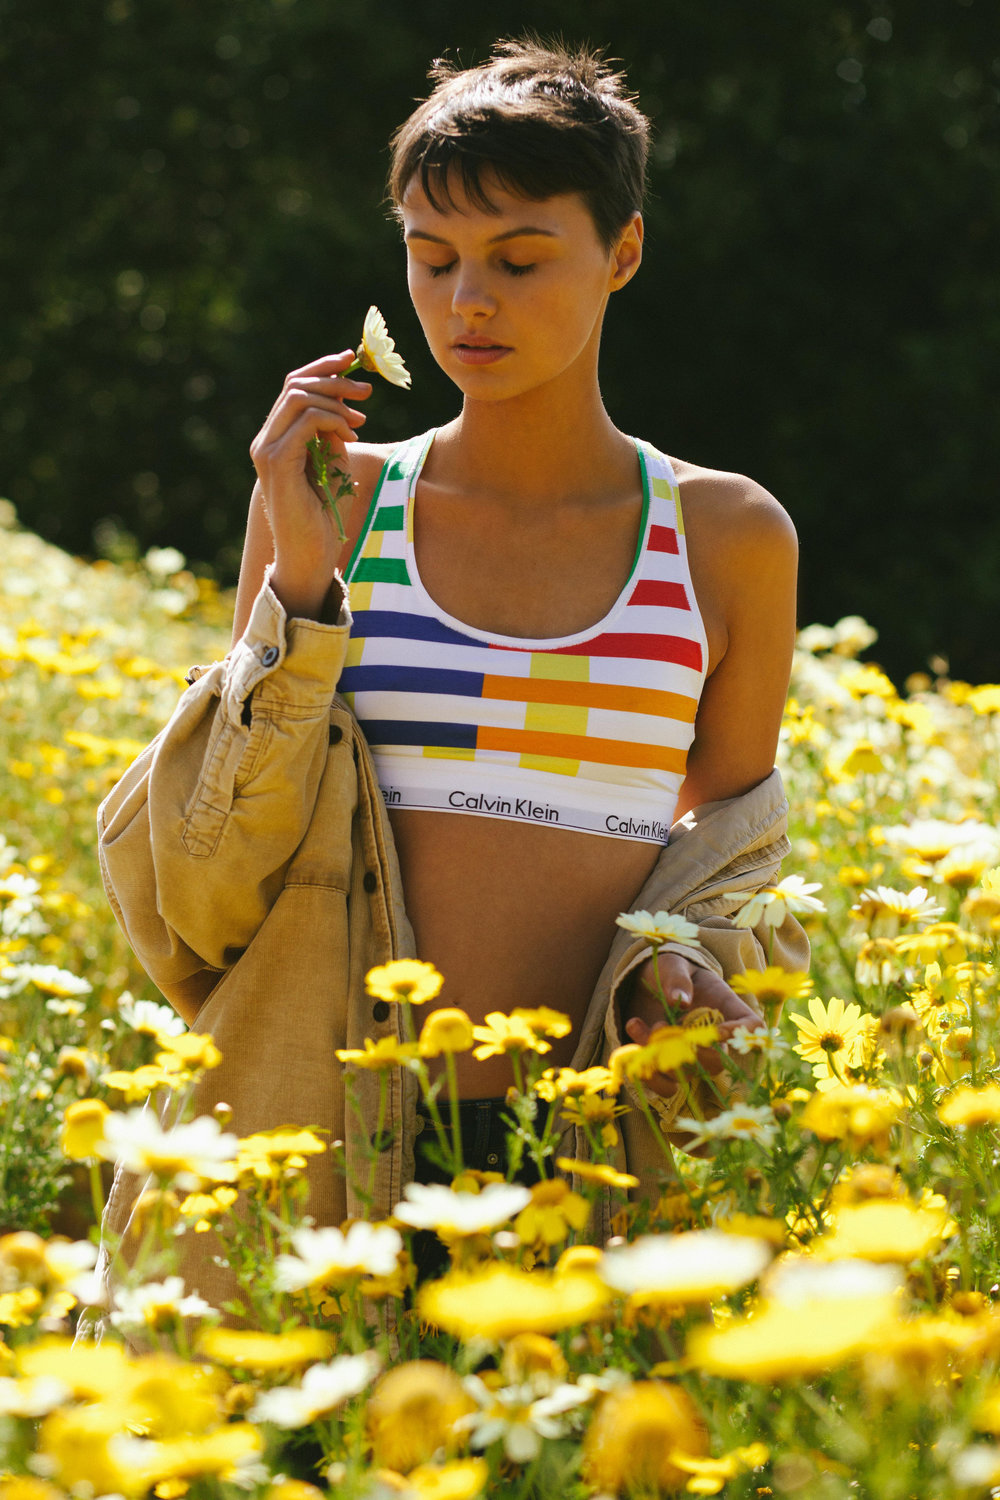 kara-flower-summer-wilson-photo-look-models-calvin-klein-0295.jpg